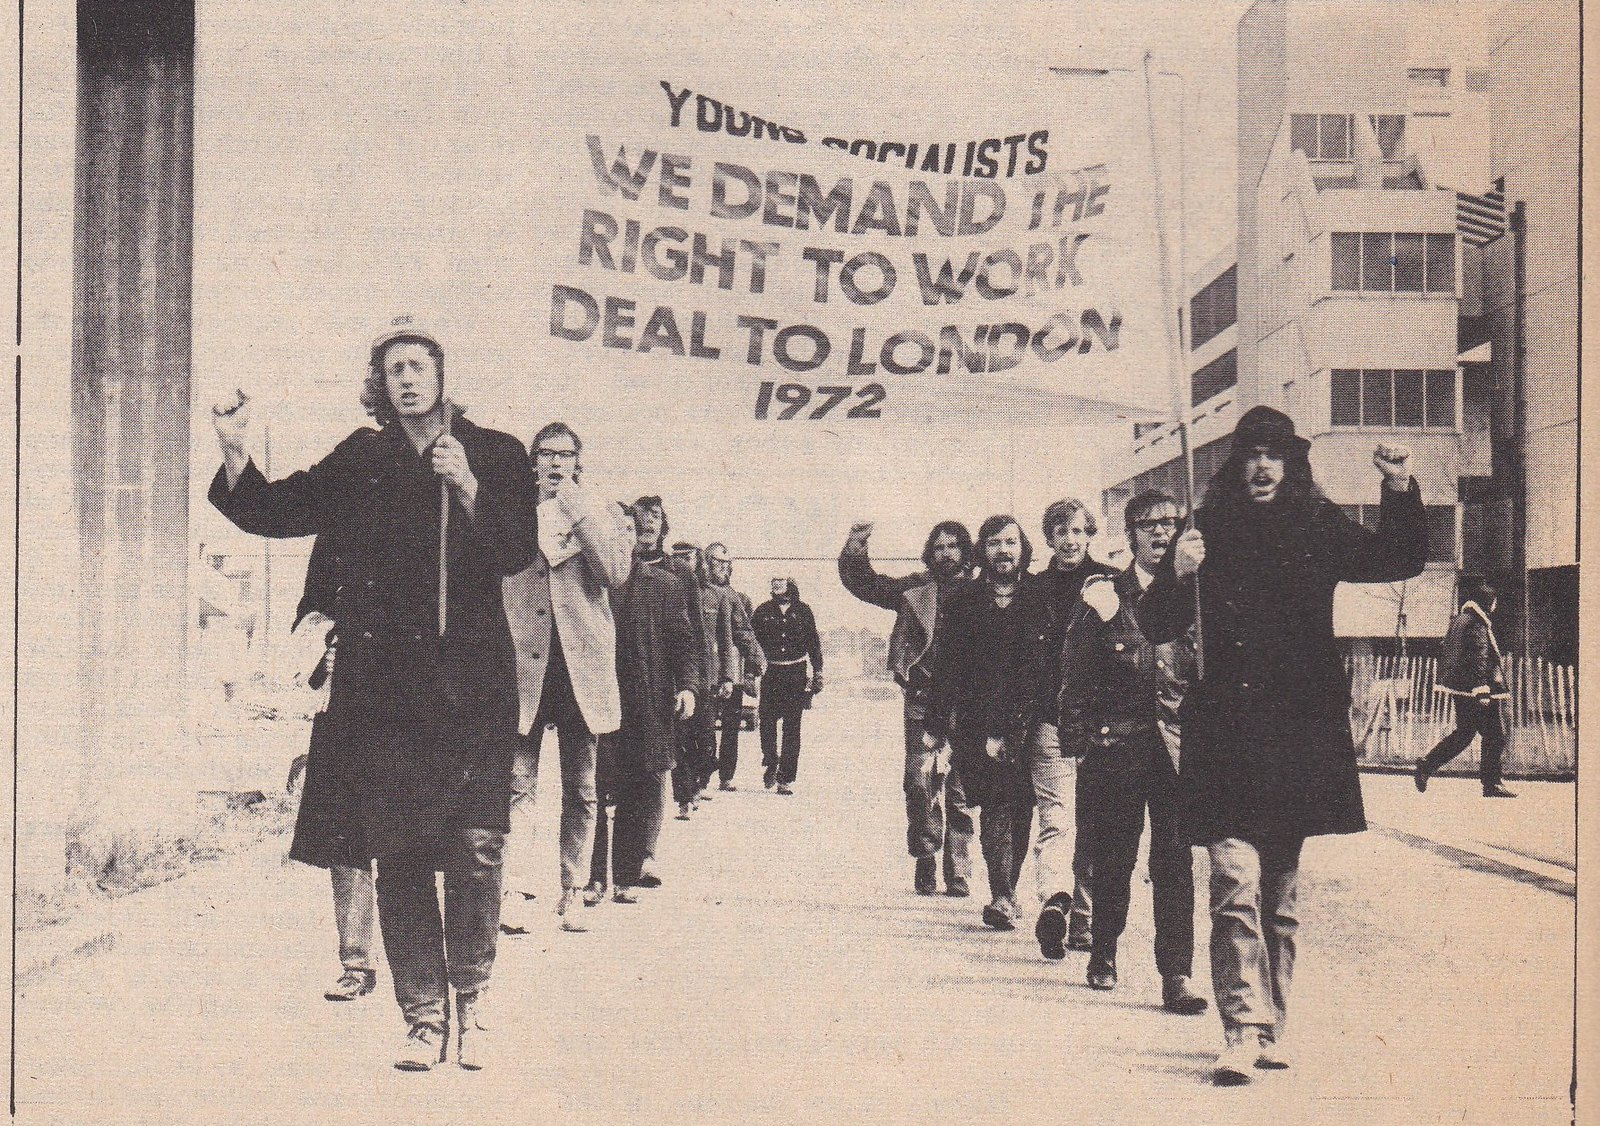 bill 3rd on the right - right work march 1972